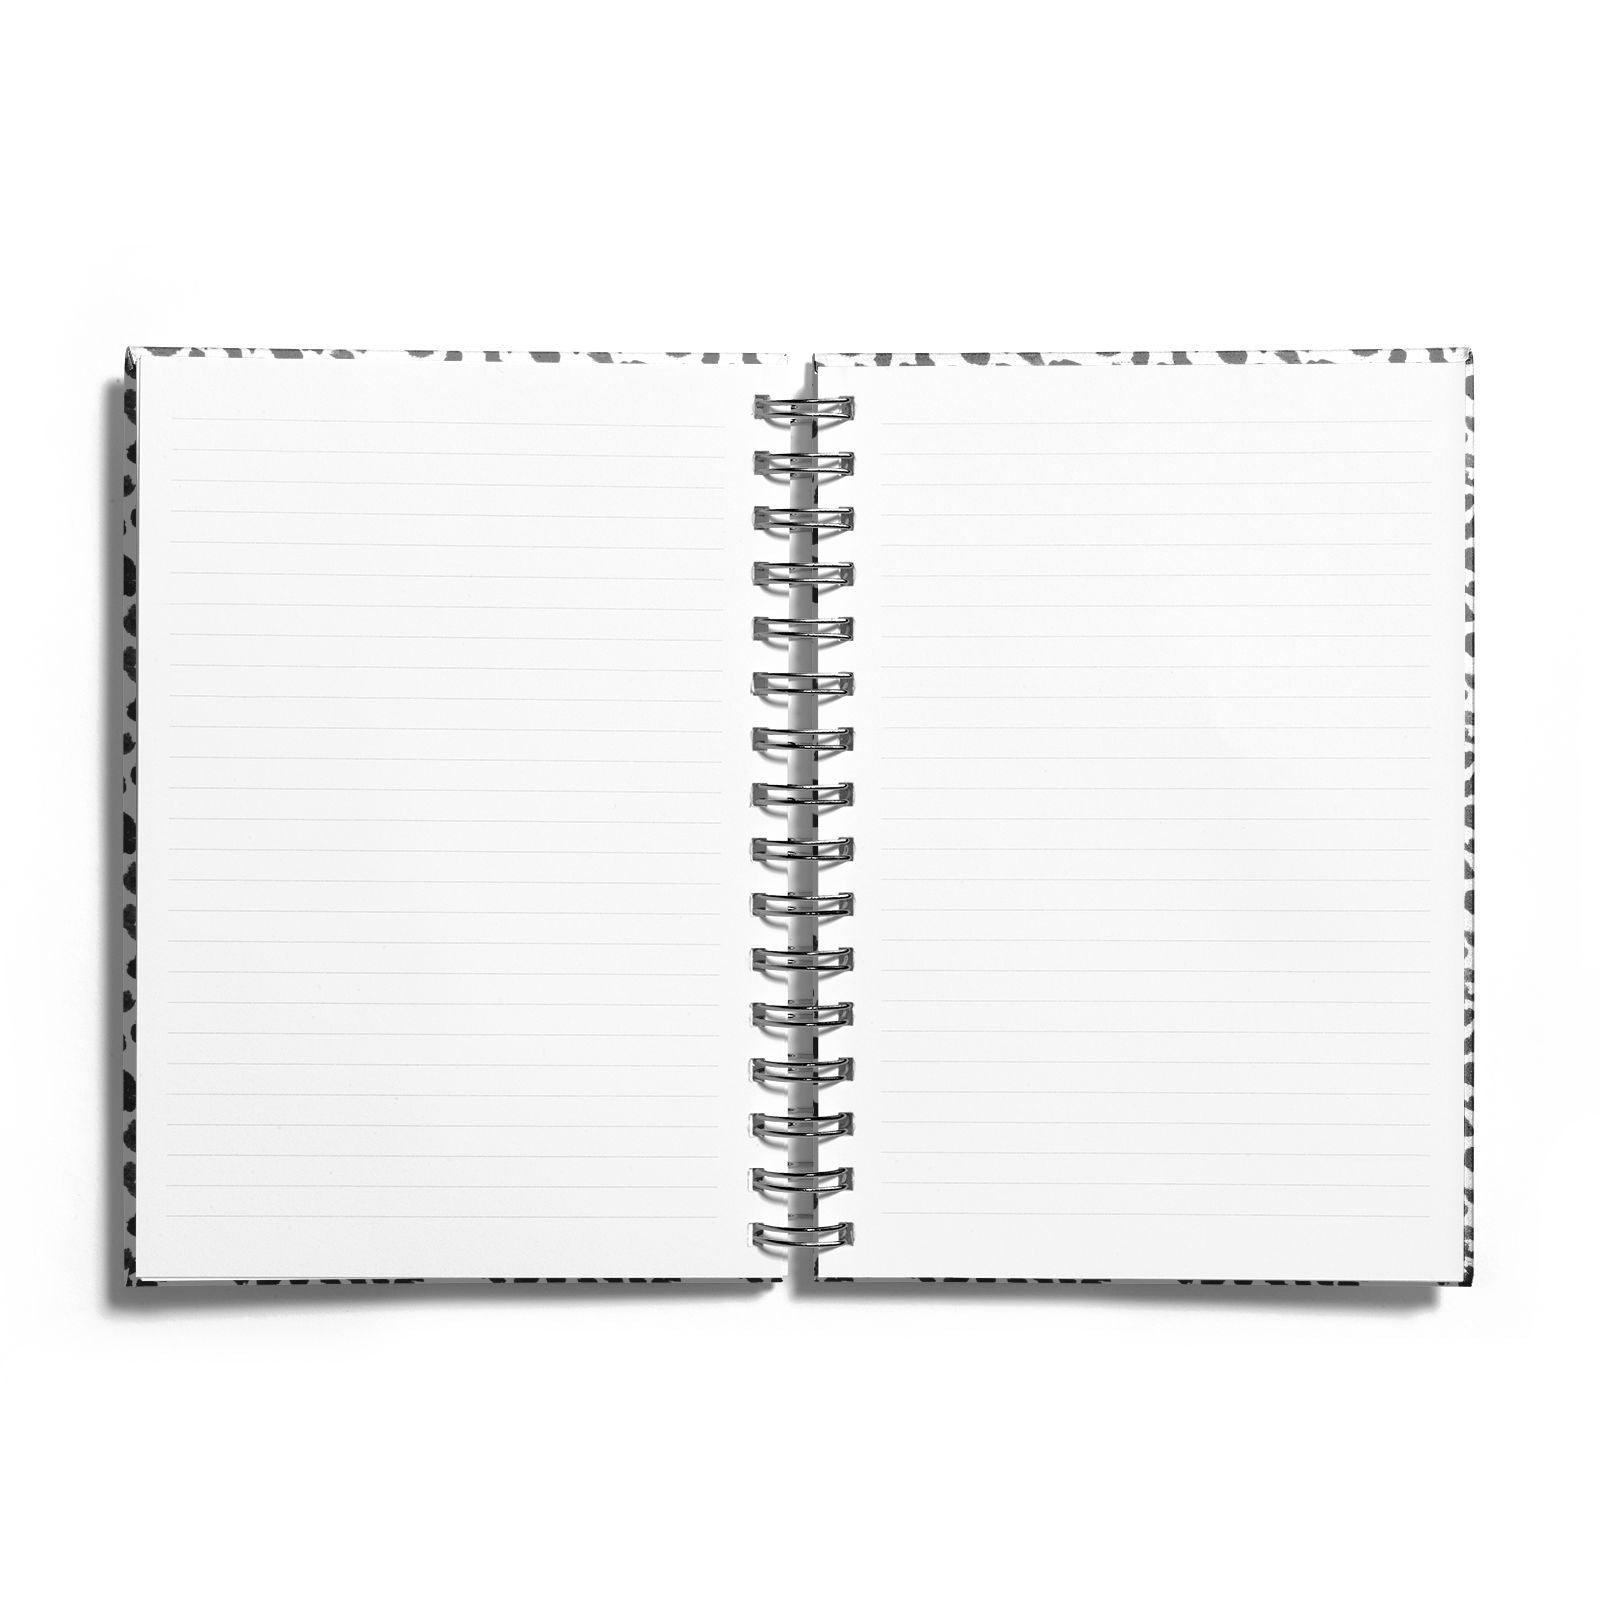 Leopard Print Black and White Notebook with Silver Coil and Lined Paper